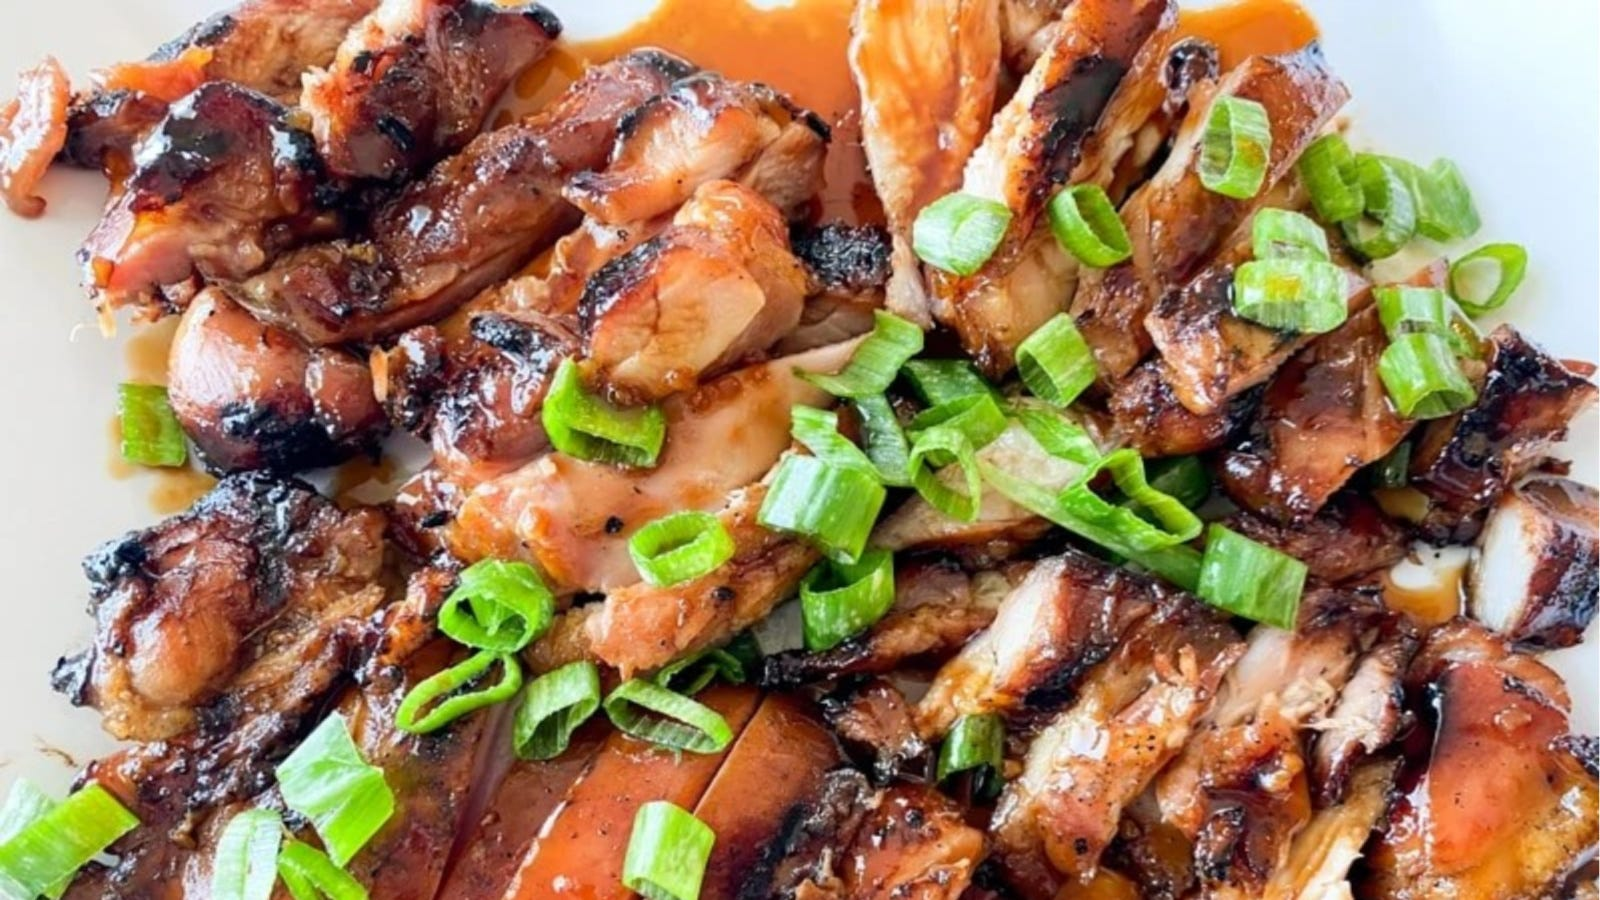 A plate of grilled Hawaiian teriyaki chicken topped with chopped green onions.